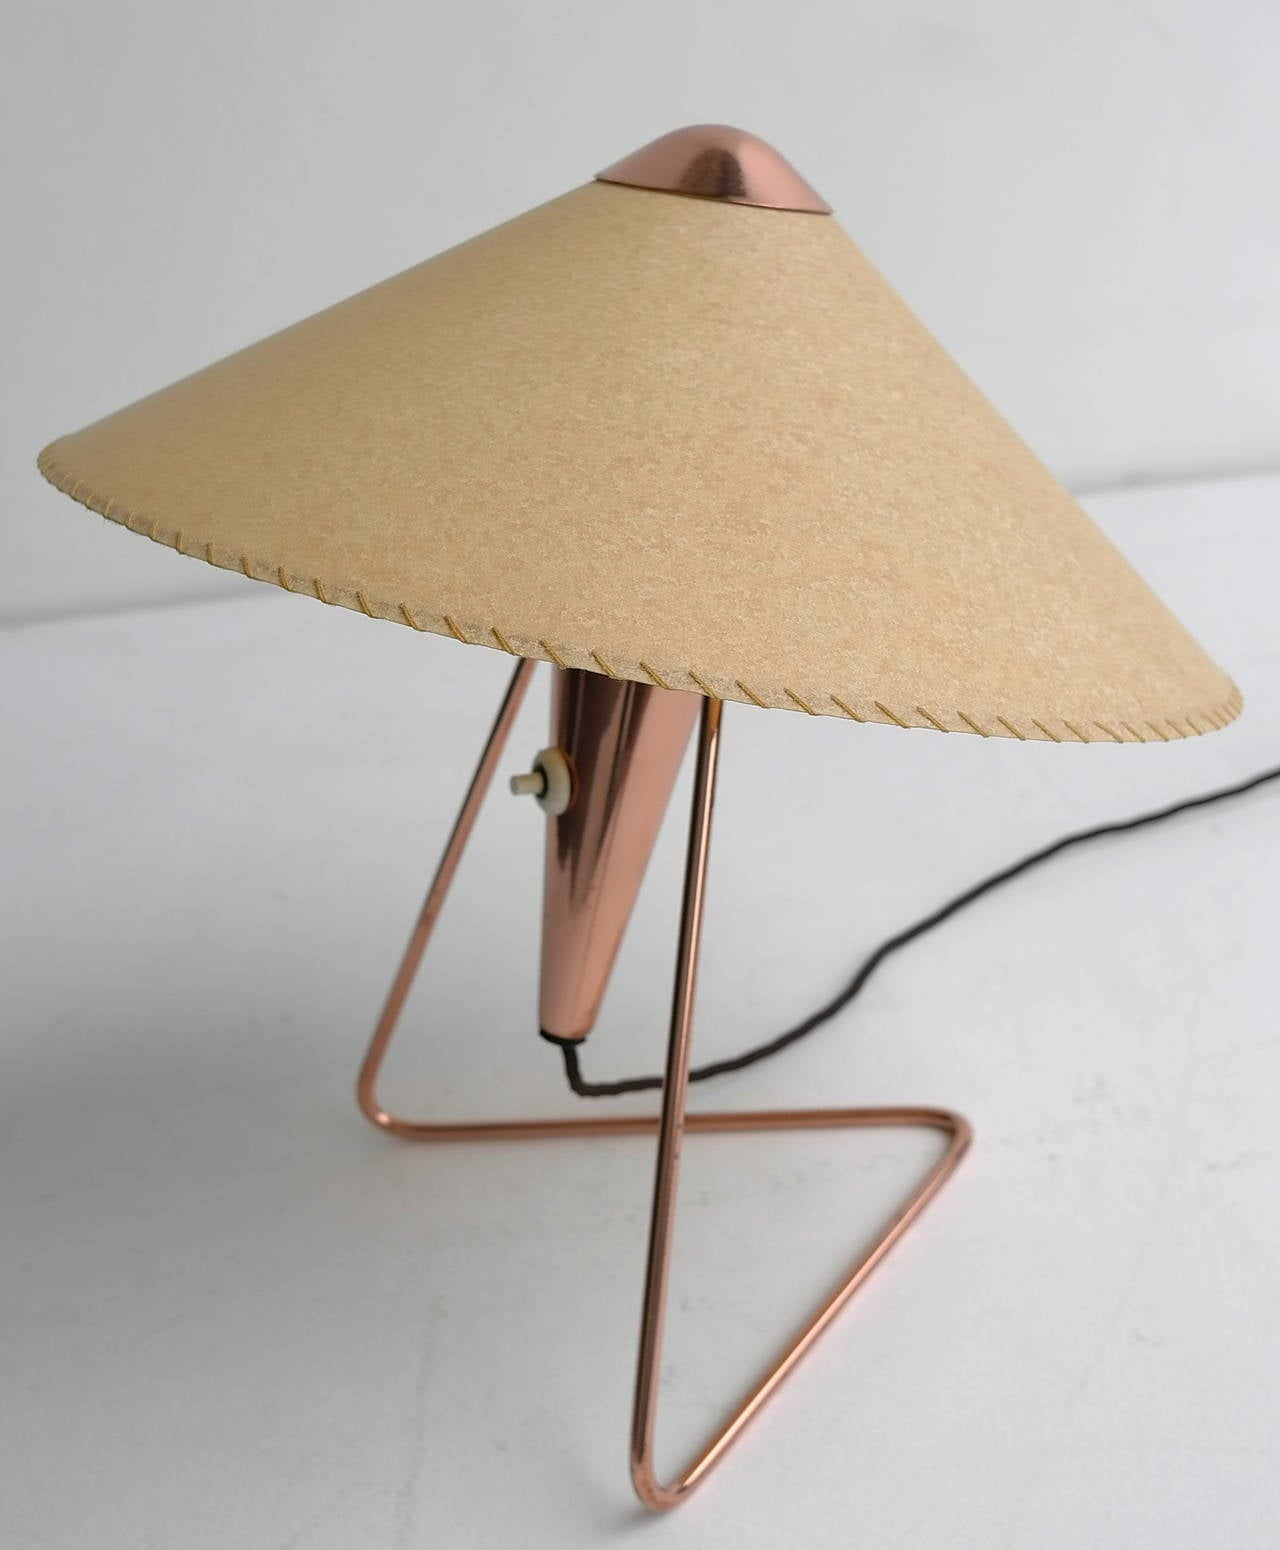 V-Shaped Copper Table Lamp, 1950s For Sale 3